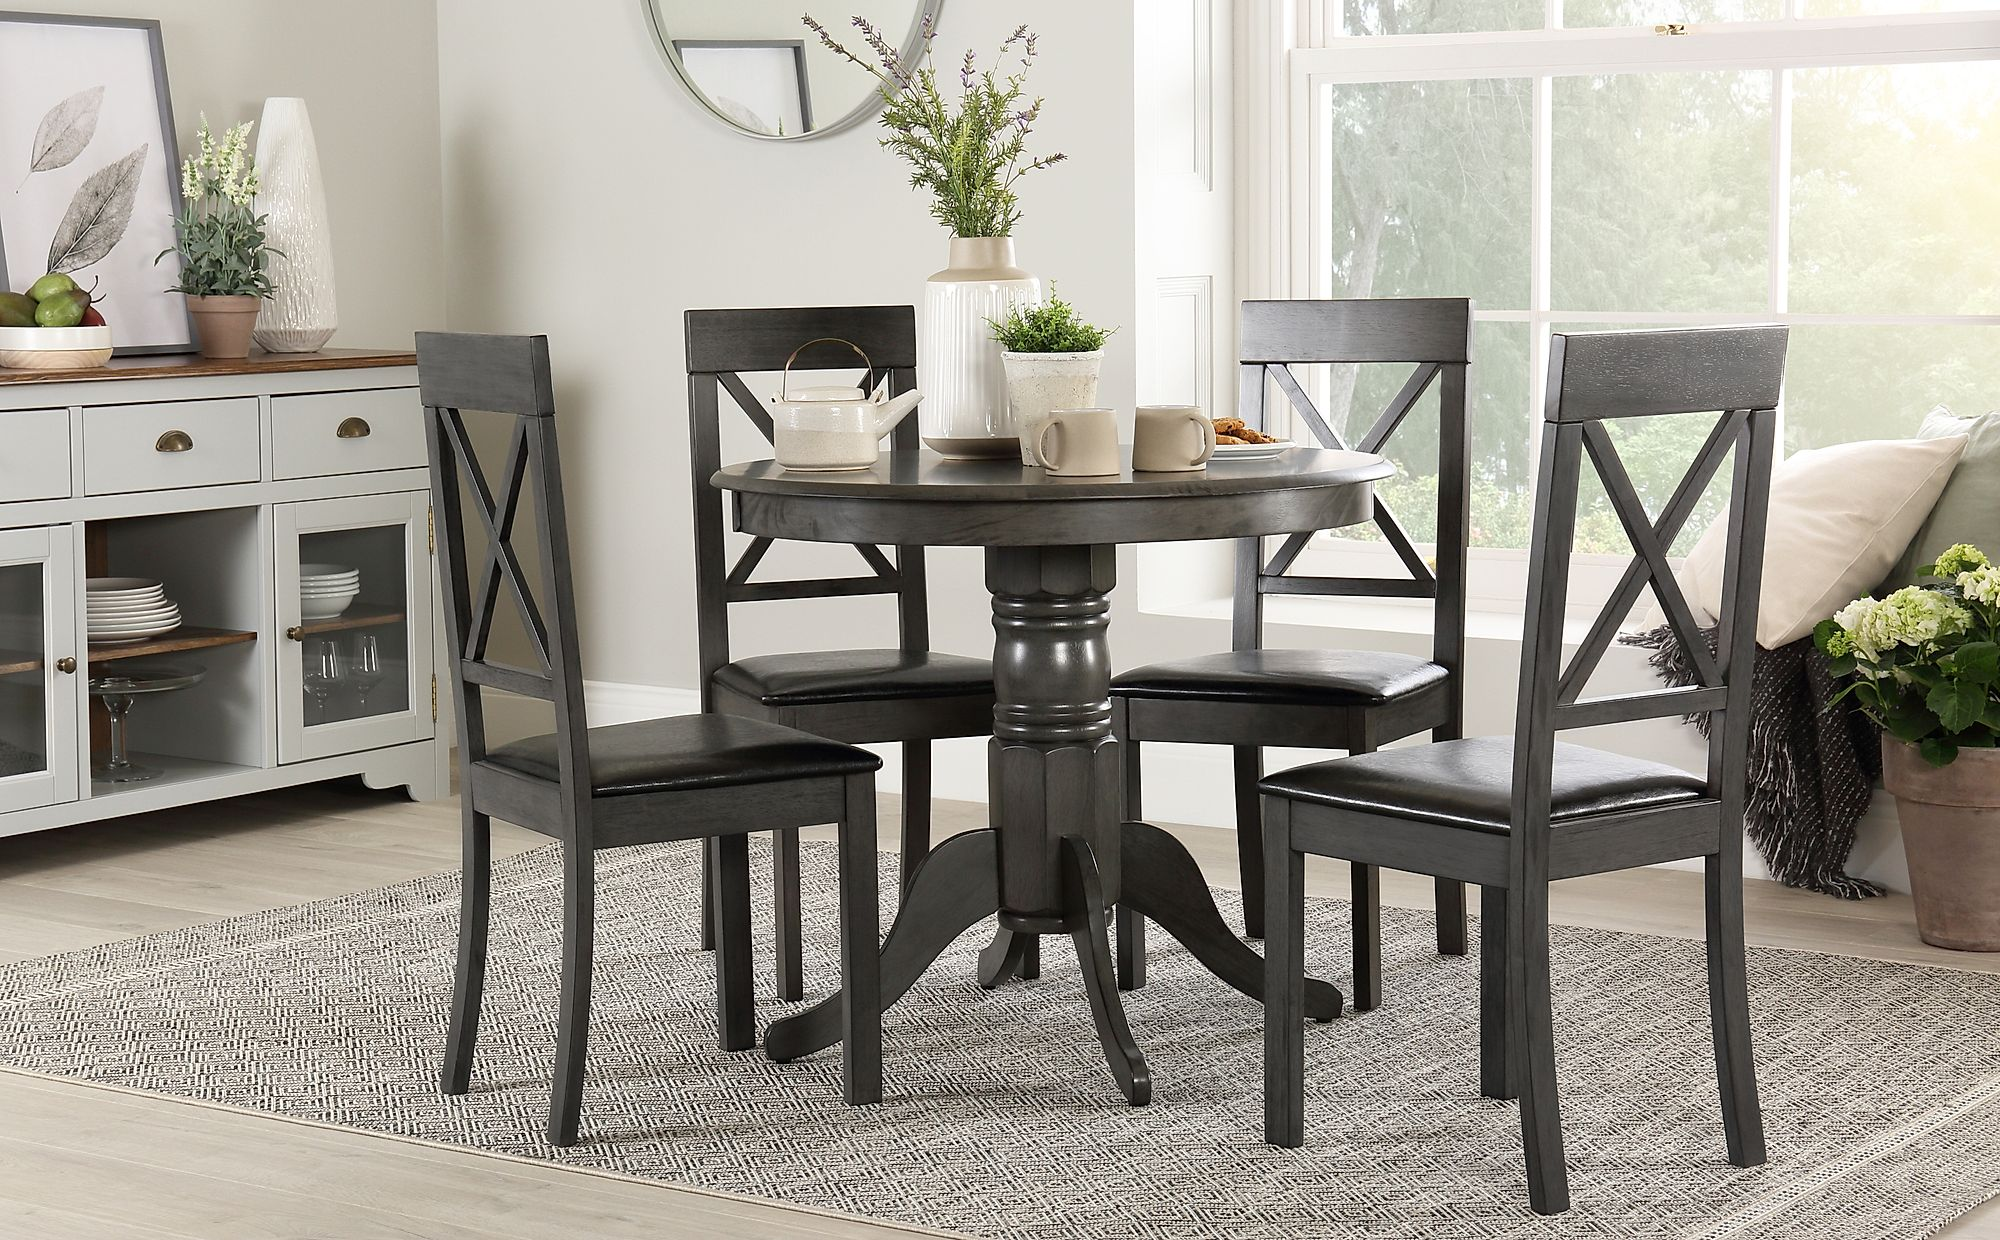 Grey Wood Dining Room Table: Kingston Round Grey Wood Dining Table With 4 Kendal Chairs